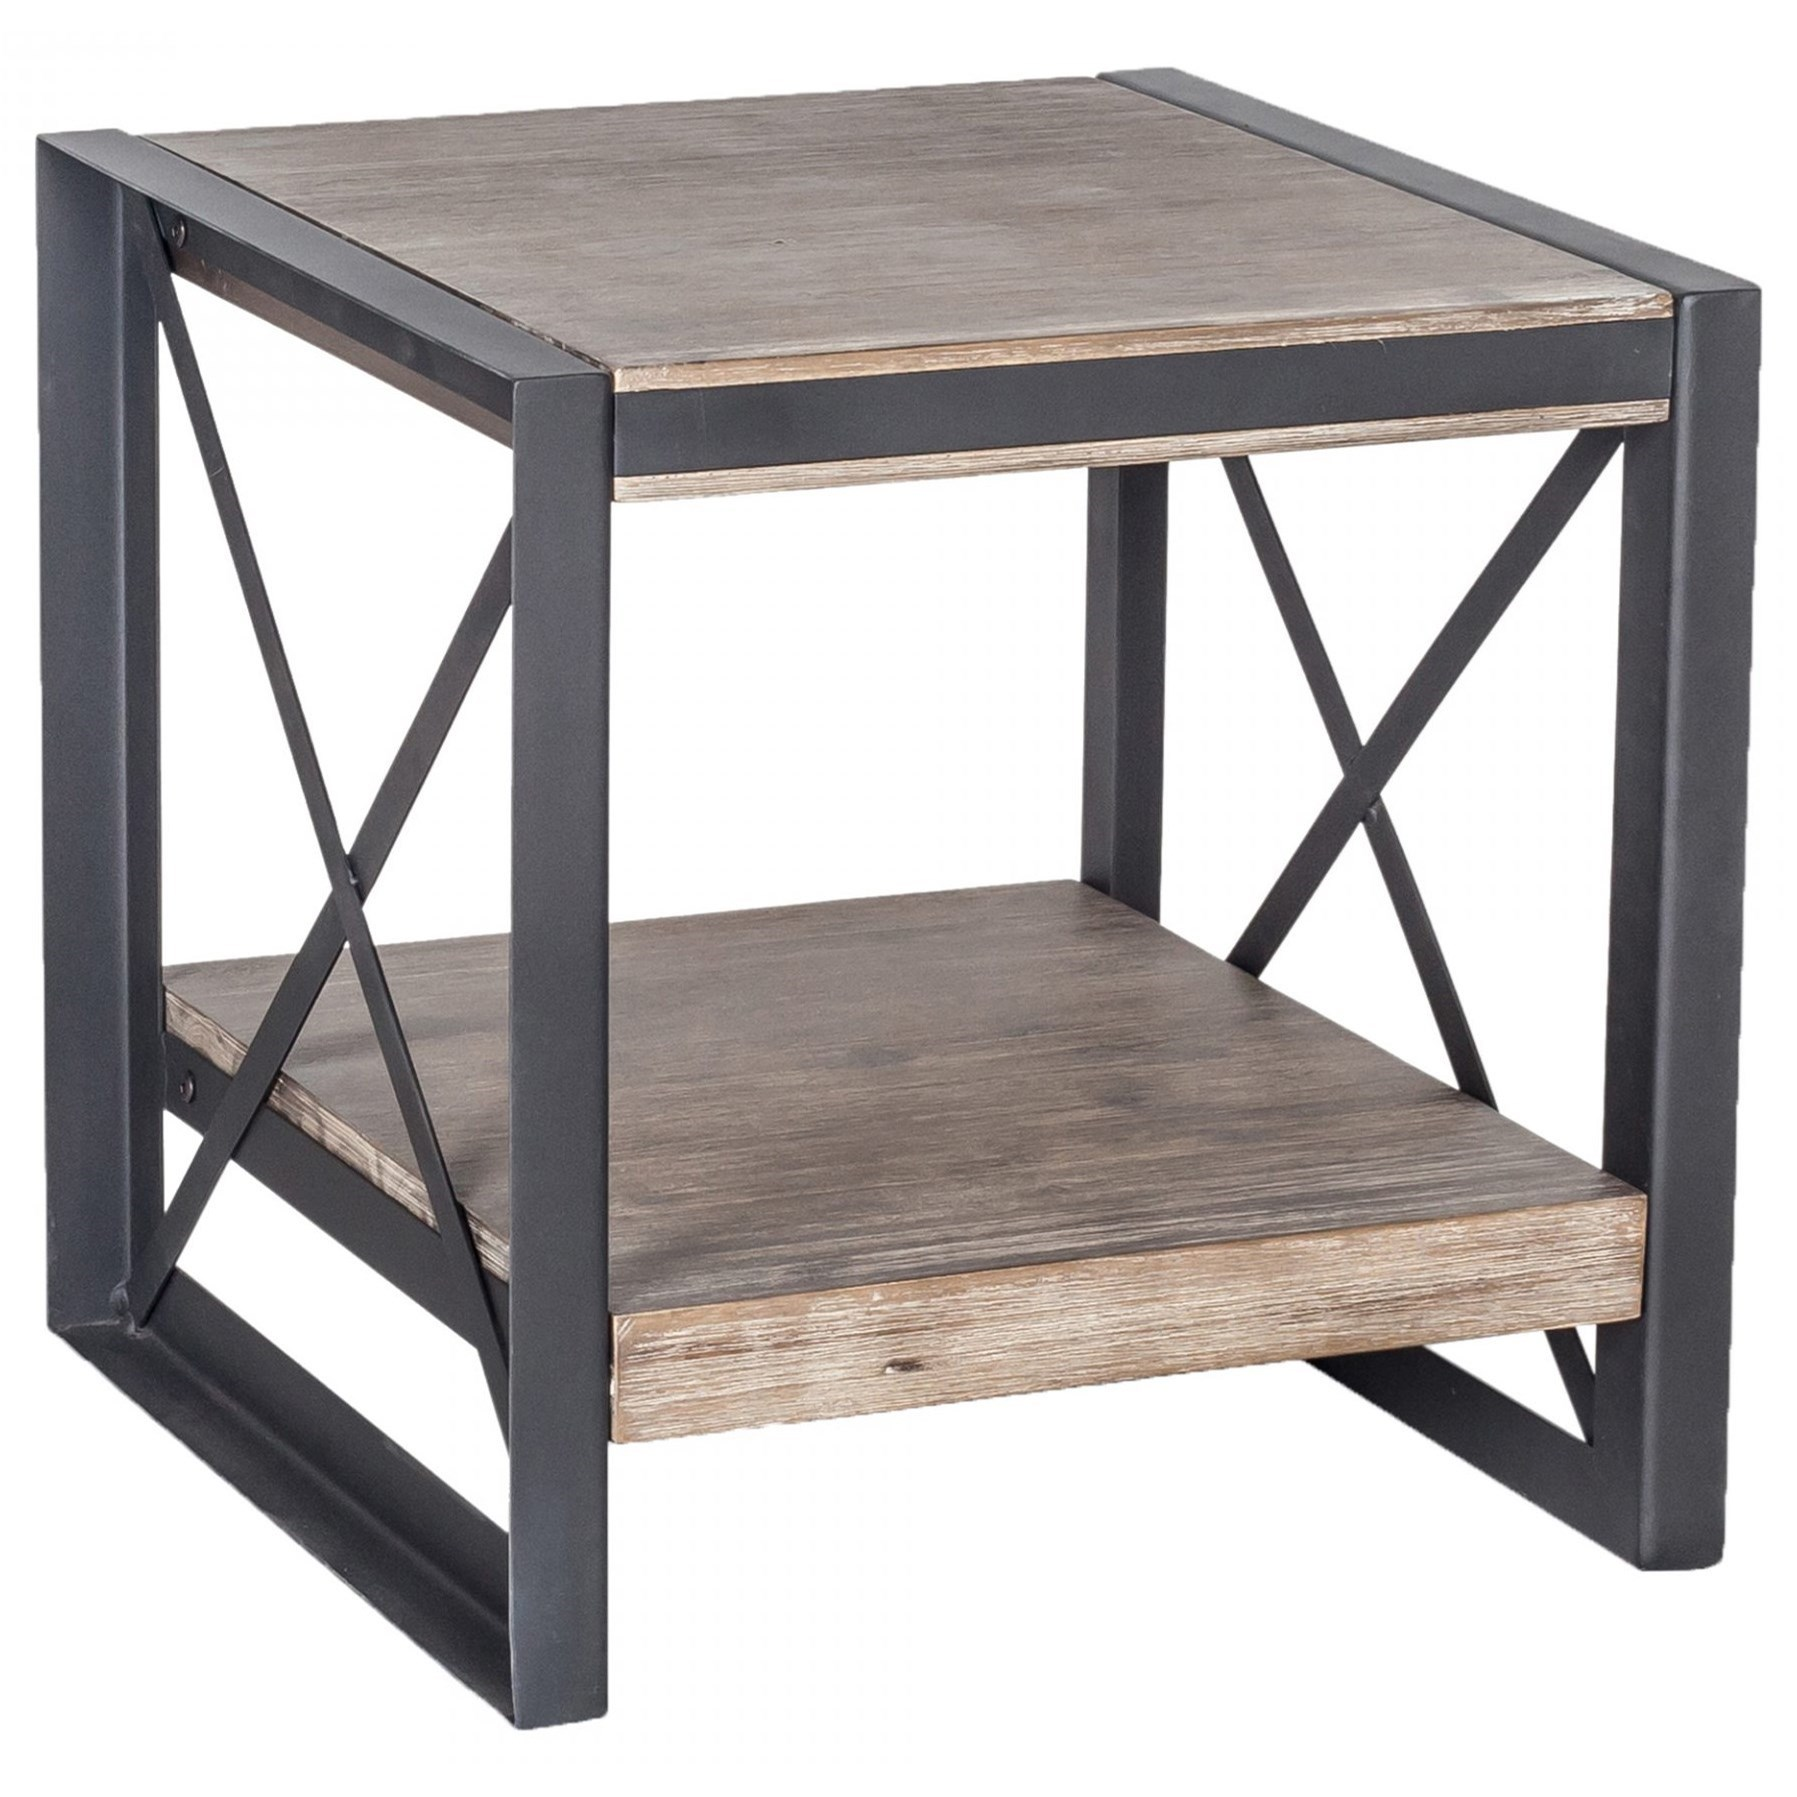 Bronx Side Table by Moe's Home Collection at Stoney Creek Furniture